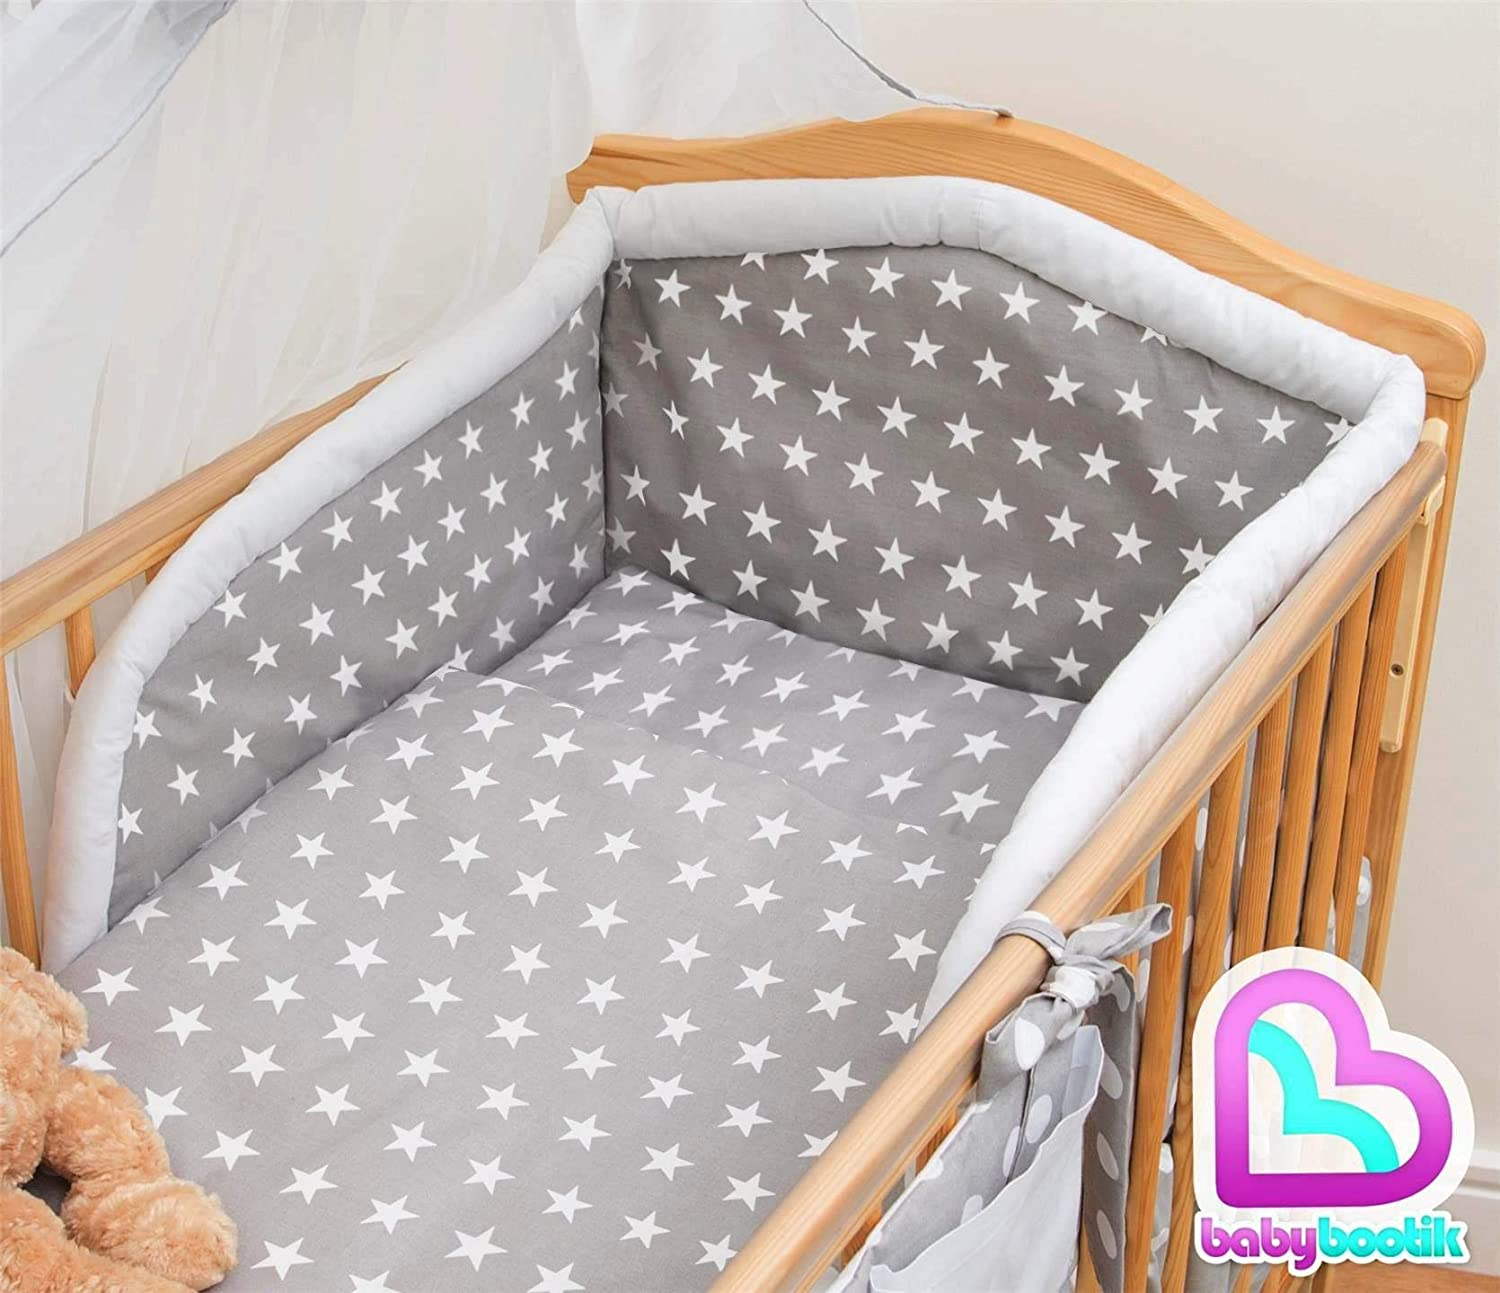 Blue 5 Piece Nursery Baby Bedding Set with Quilt and Padded Bumper fits 120x60 cm Cot